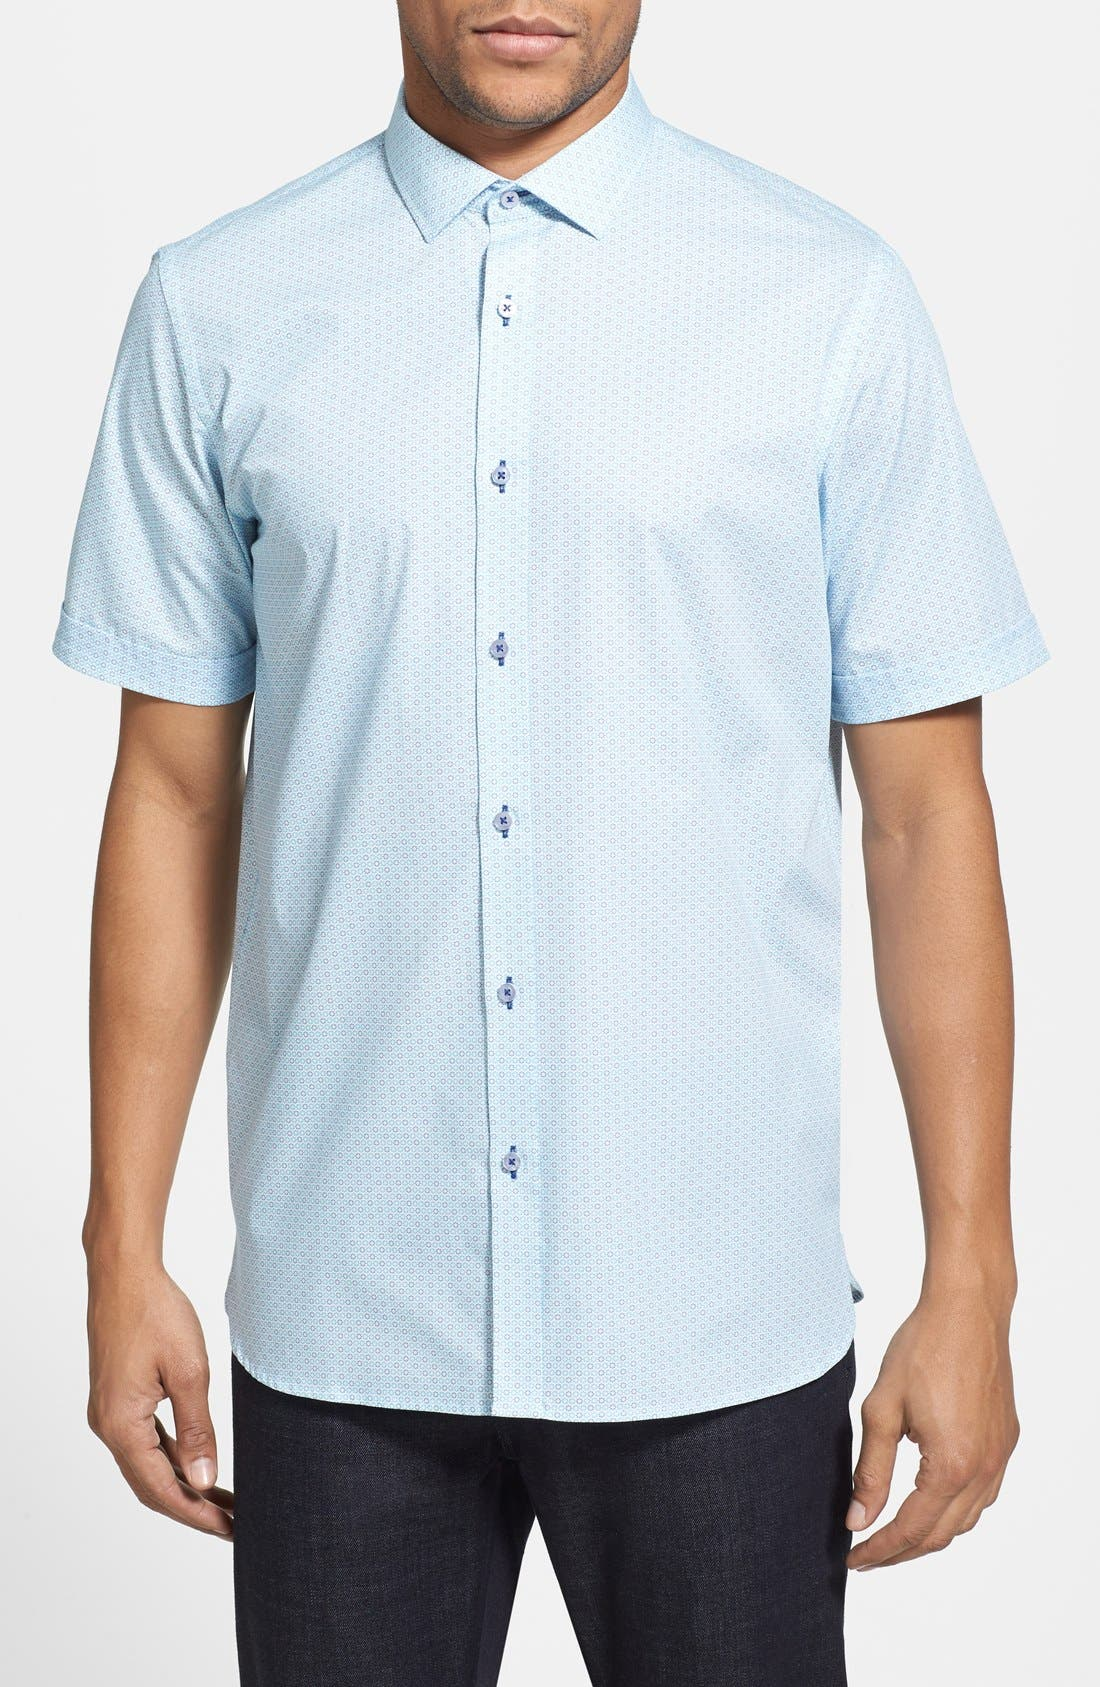 Main Image - Report Collection Trim Fit Short Sleeve Sport Shirt